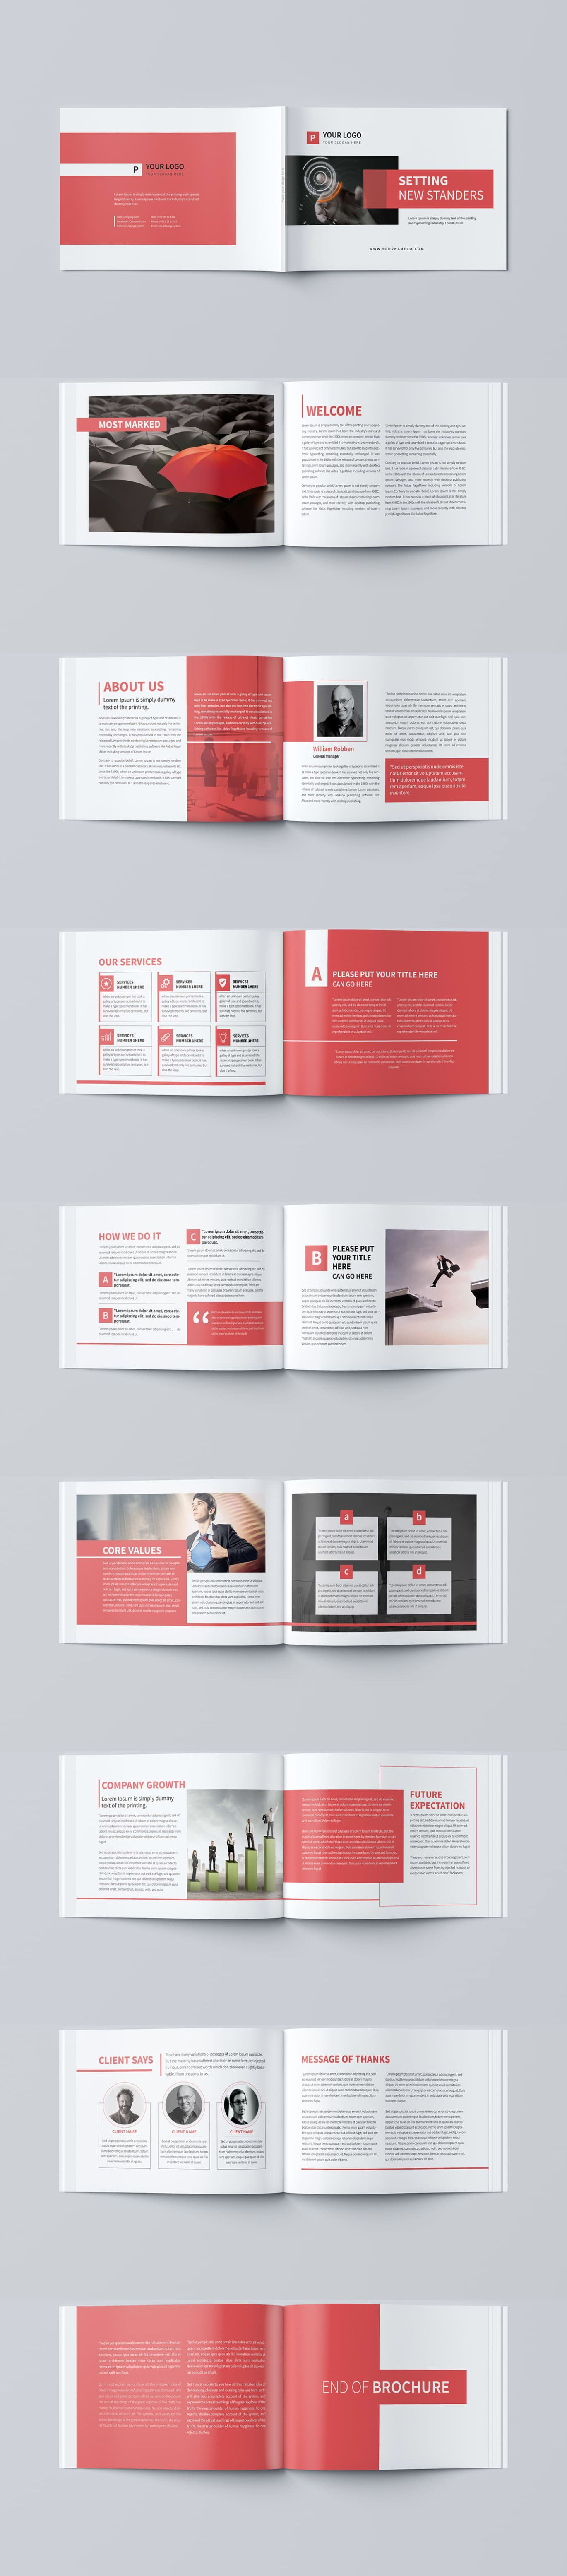 Minimal Business Brochure Template Psd  Brochure Templates